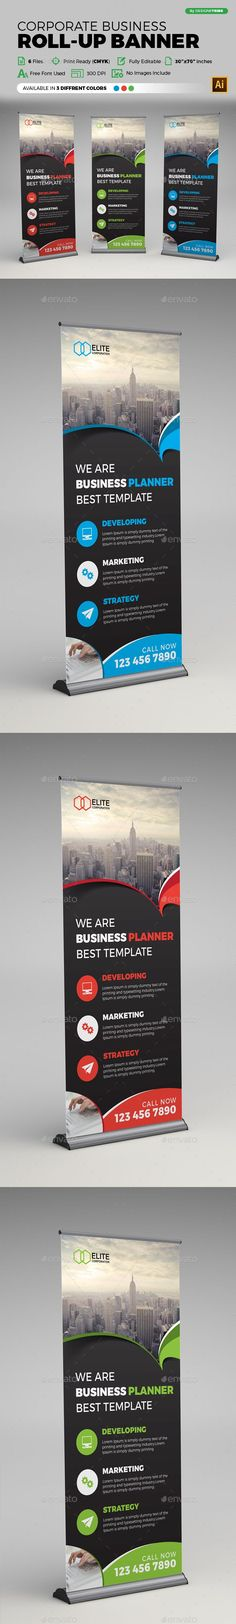 Corporate Business Rollup Banner — Vector EPS #service #stand • Available here → https://graphicriver.net/item/corporate-business-rollup-banner/18718291?ref=pxcr